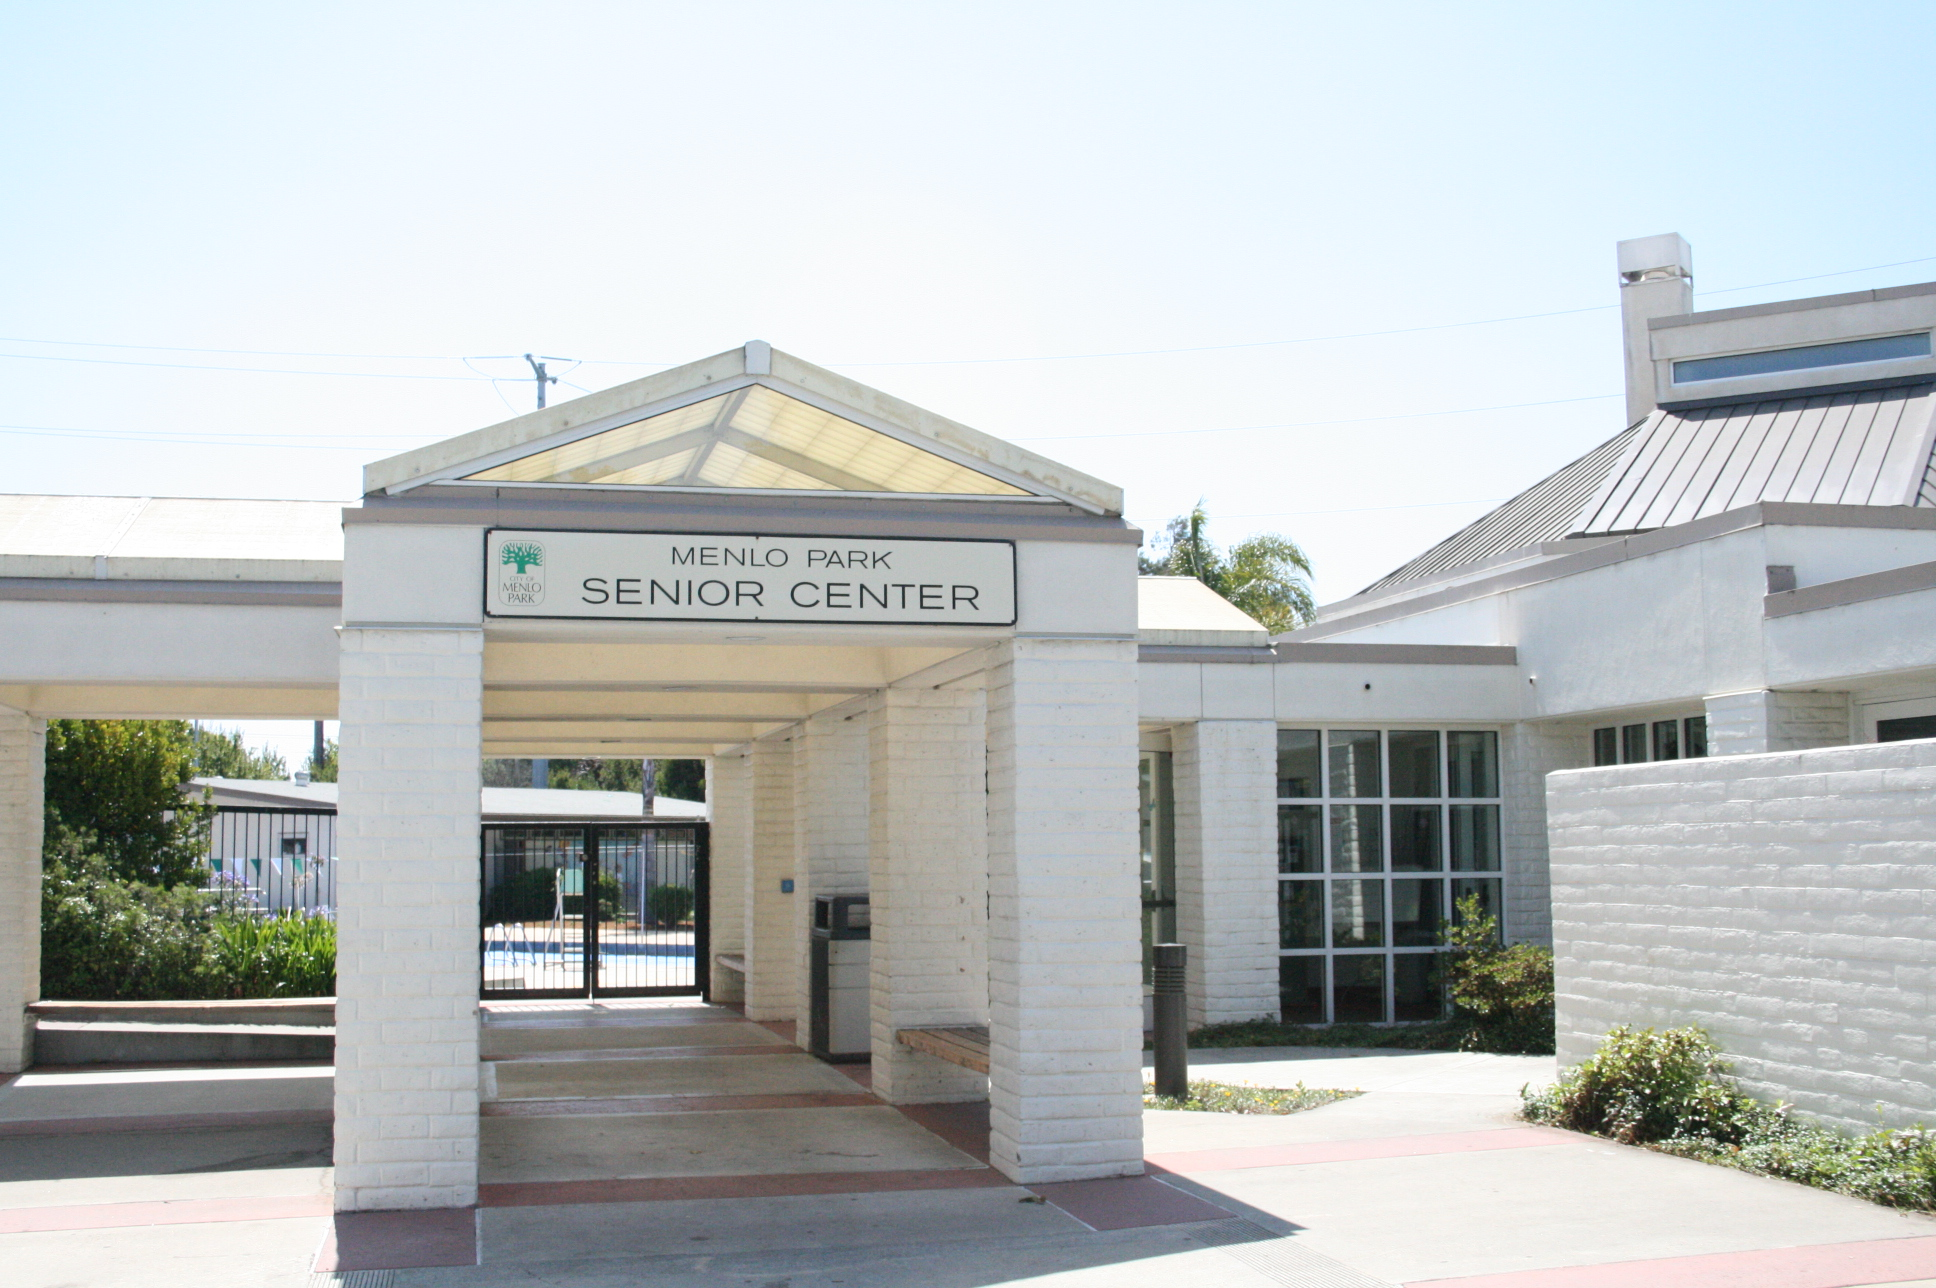 Exterior photo of the front of Menlo Park Senior Center.